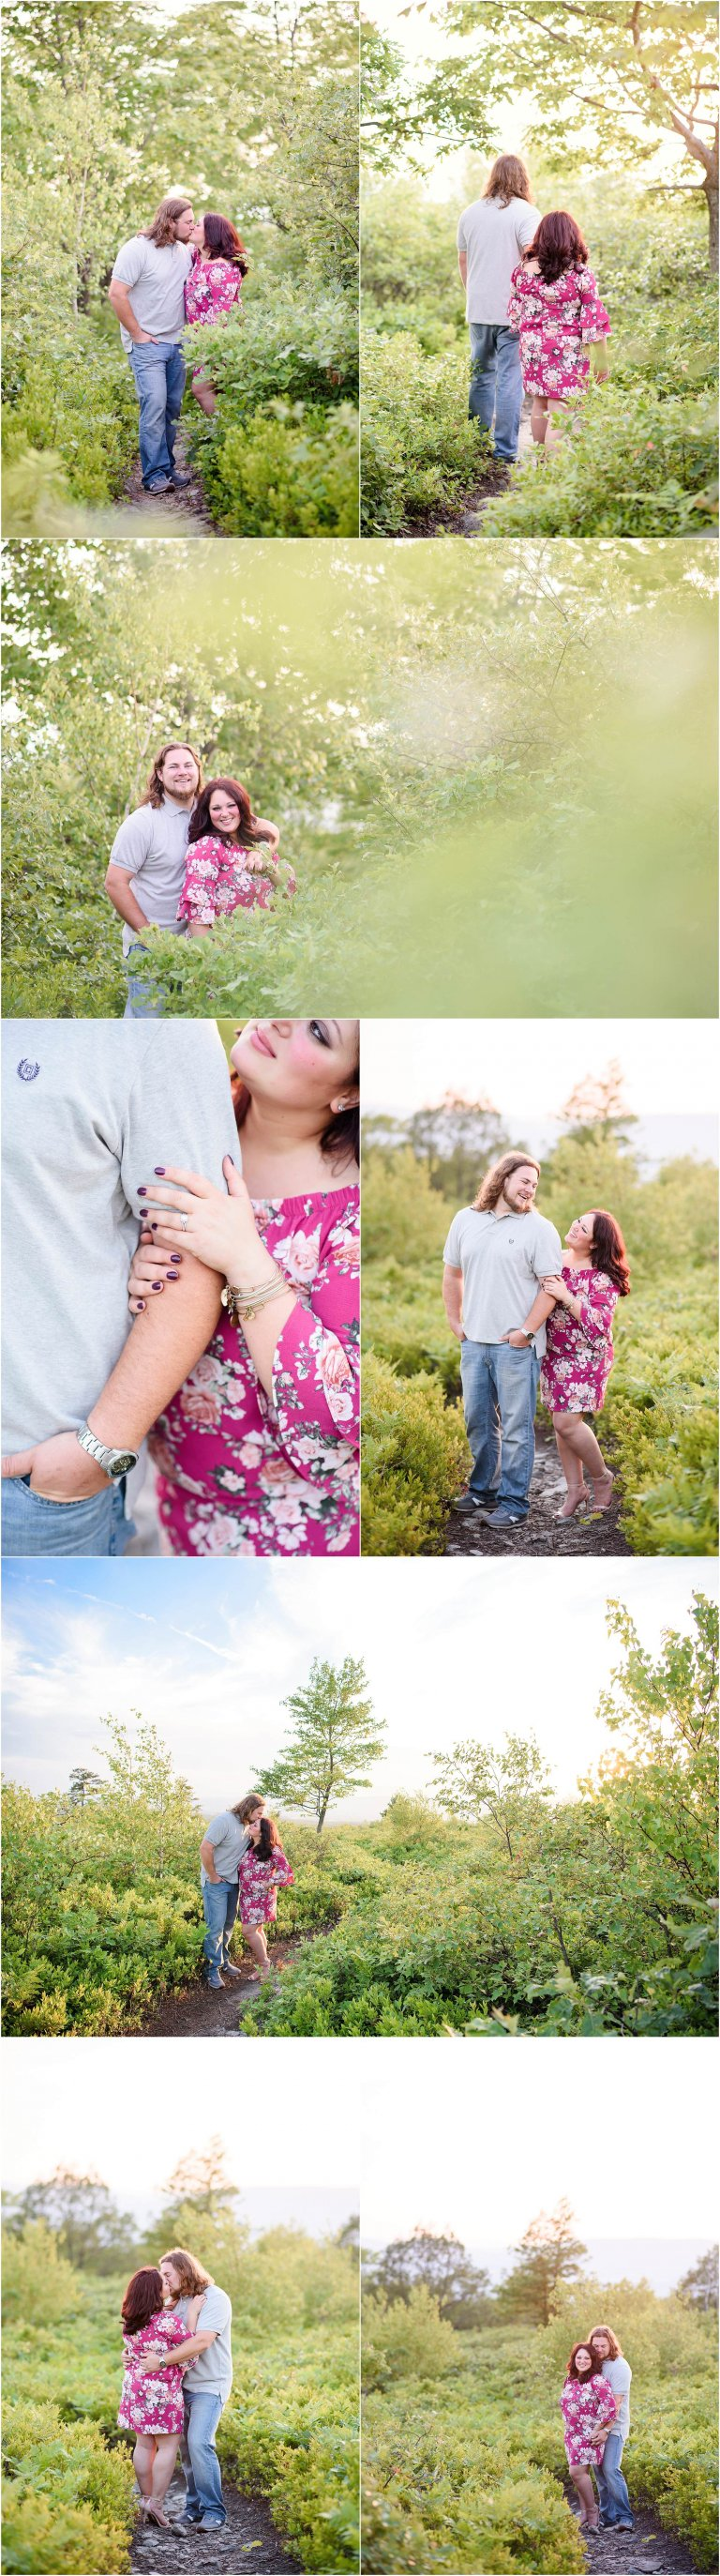 sunset engagement session hike with NEPA photographer Crystal Satriano, the couple, and their dog.